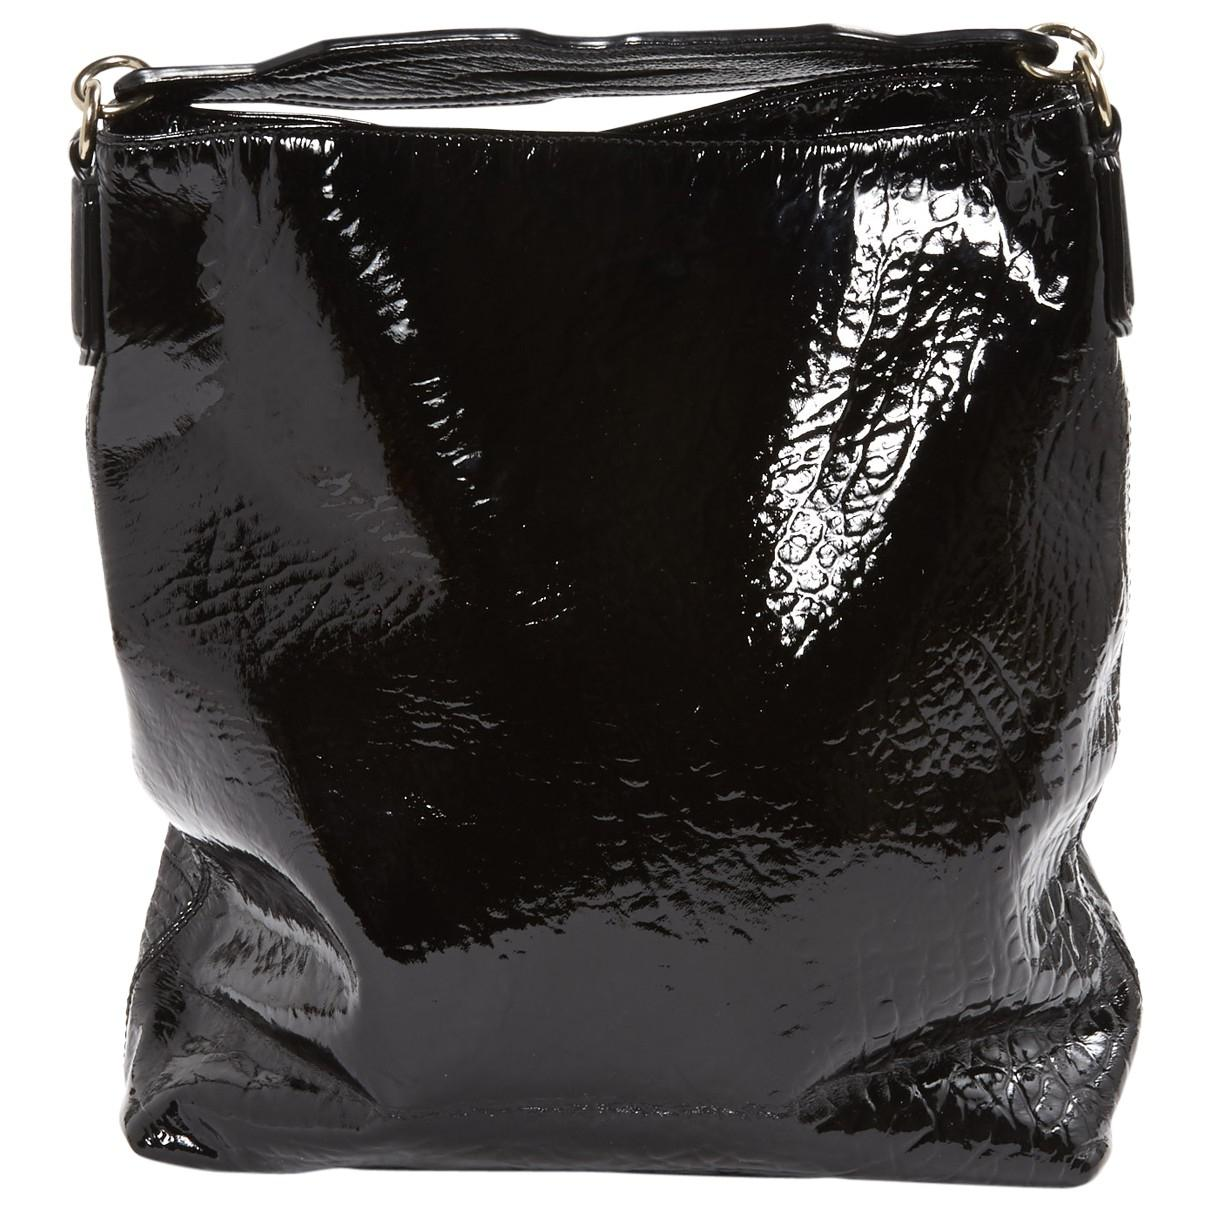 Alexander Wang Pre-owned - Darcy patent leather handbag f8jdY